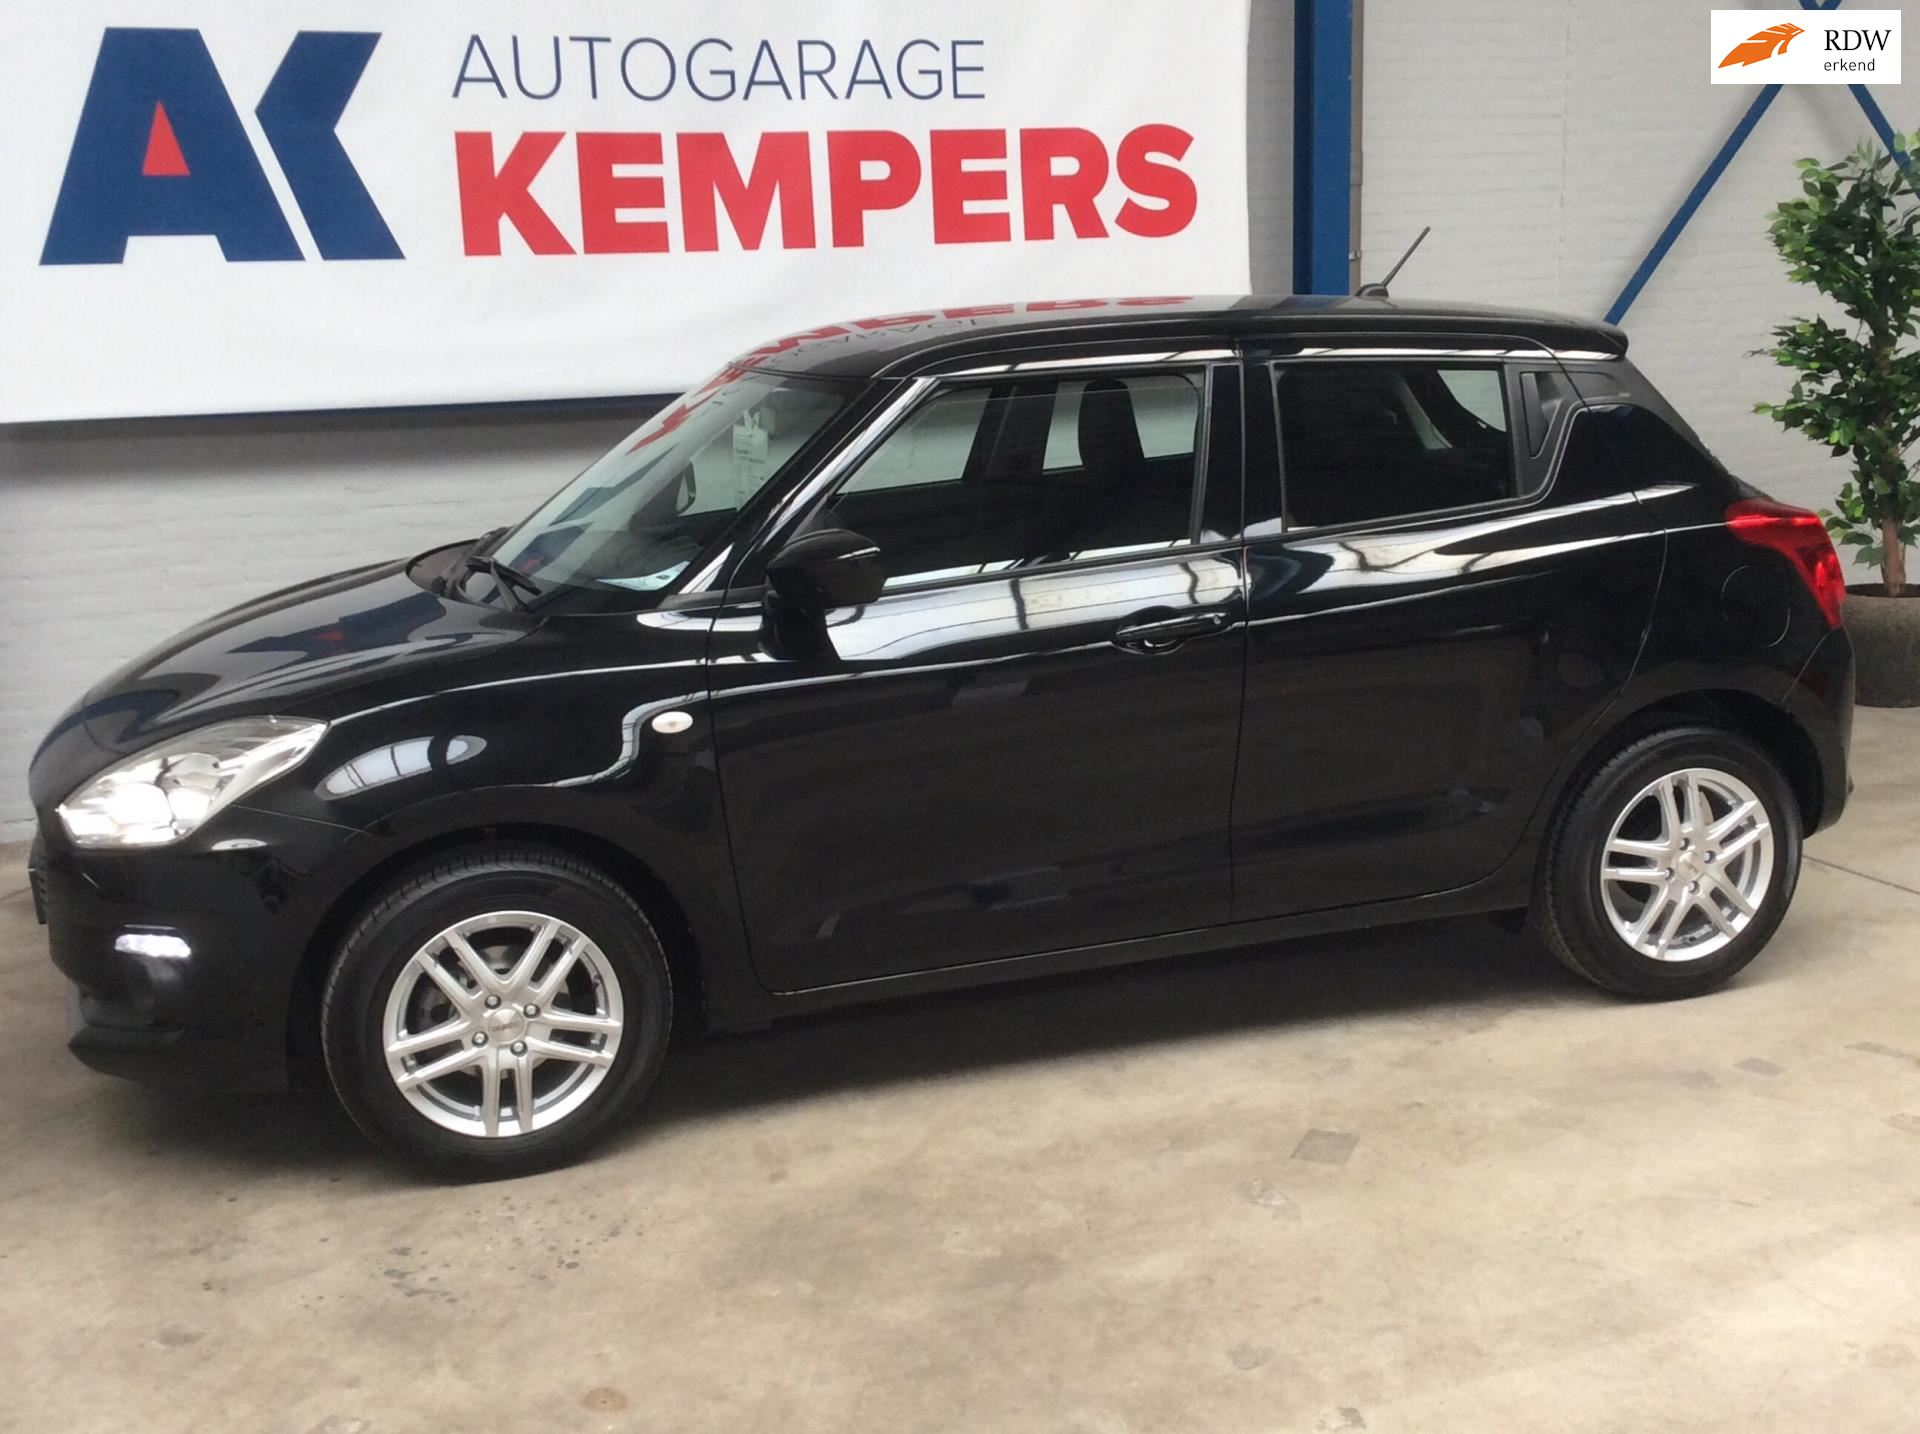 Suzuki Swift occasion - Autogarage Kempers